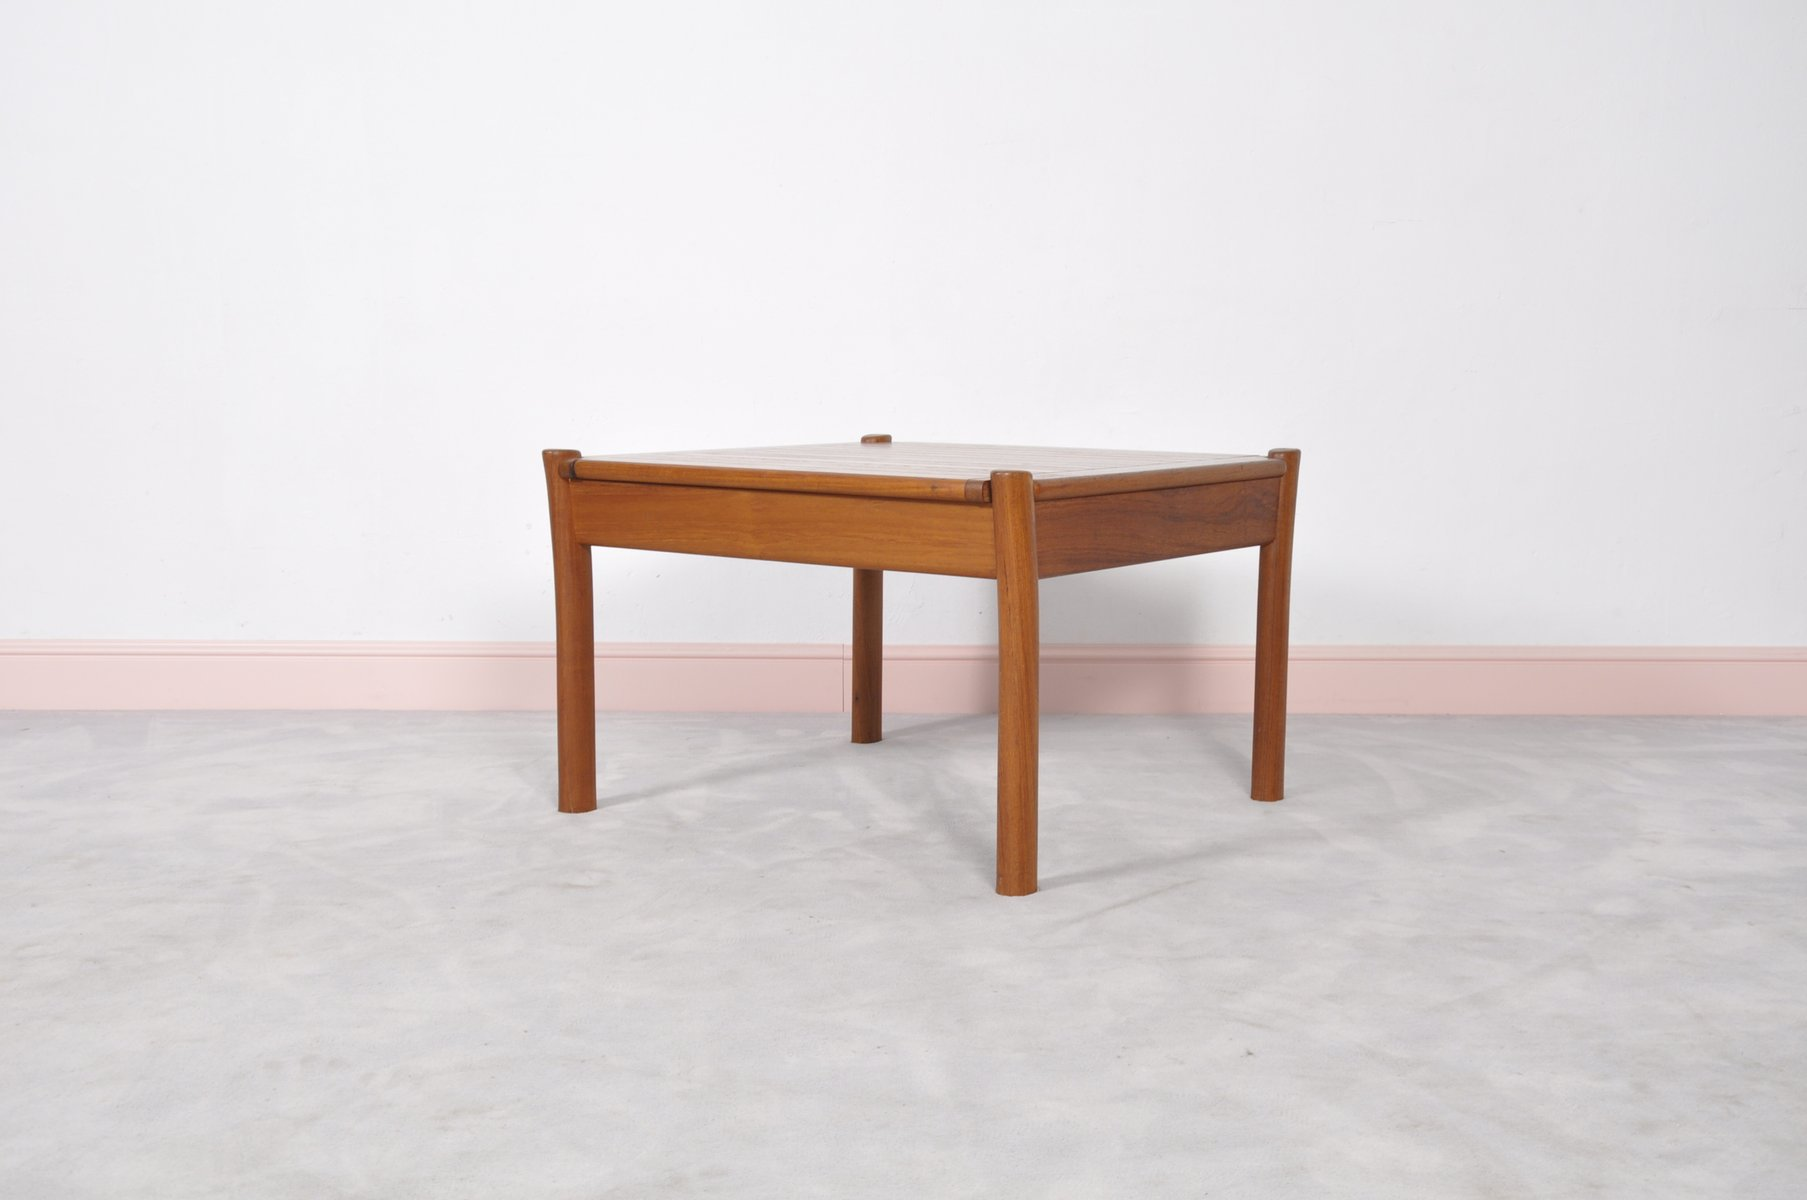 Vintage Danish Teak Coffee Table With Rounded Edges For